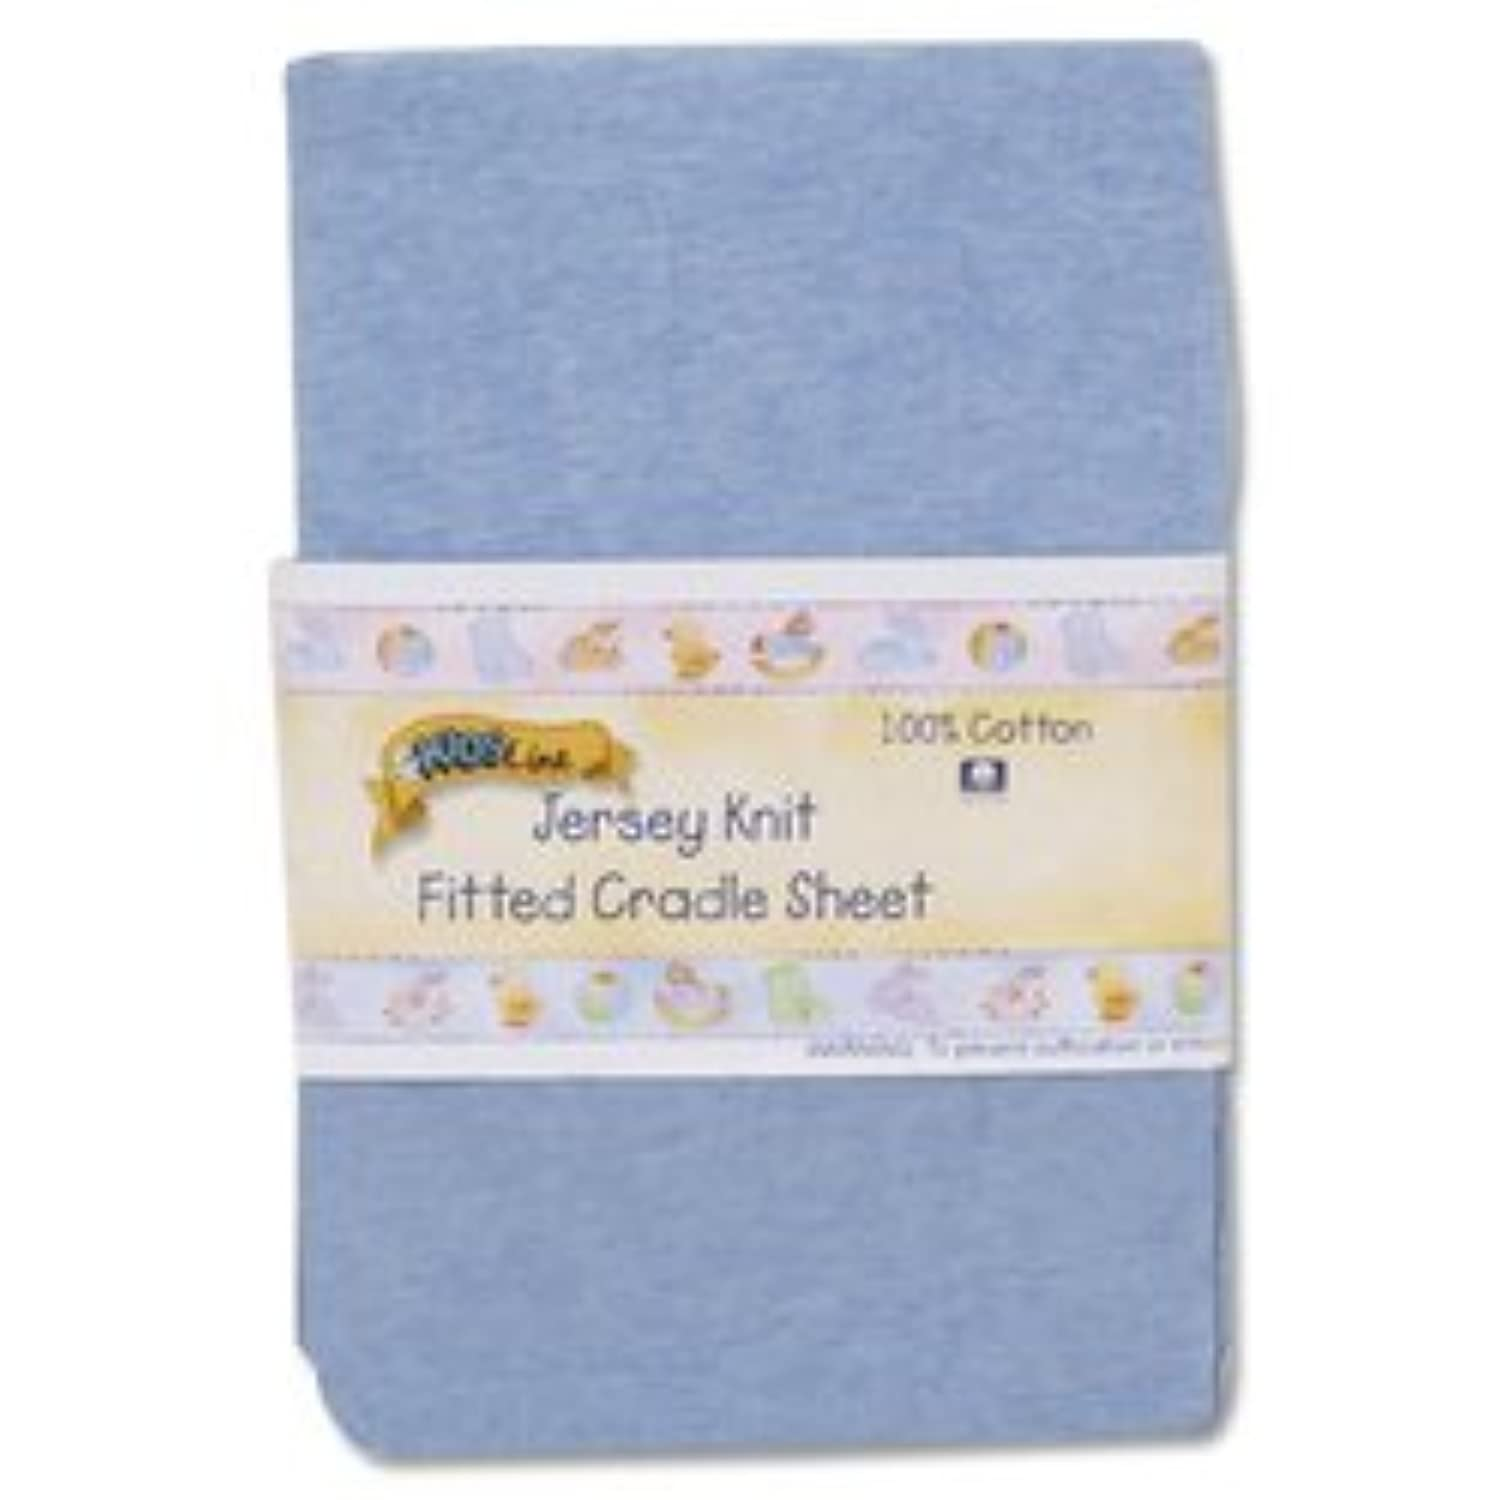 Kids Line Jersey Knit Fitted Cradle Sheet - Chambray by KidsLine